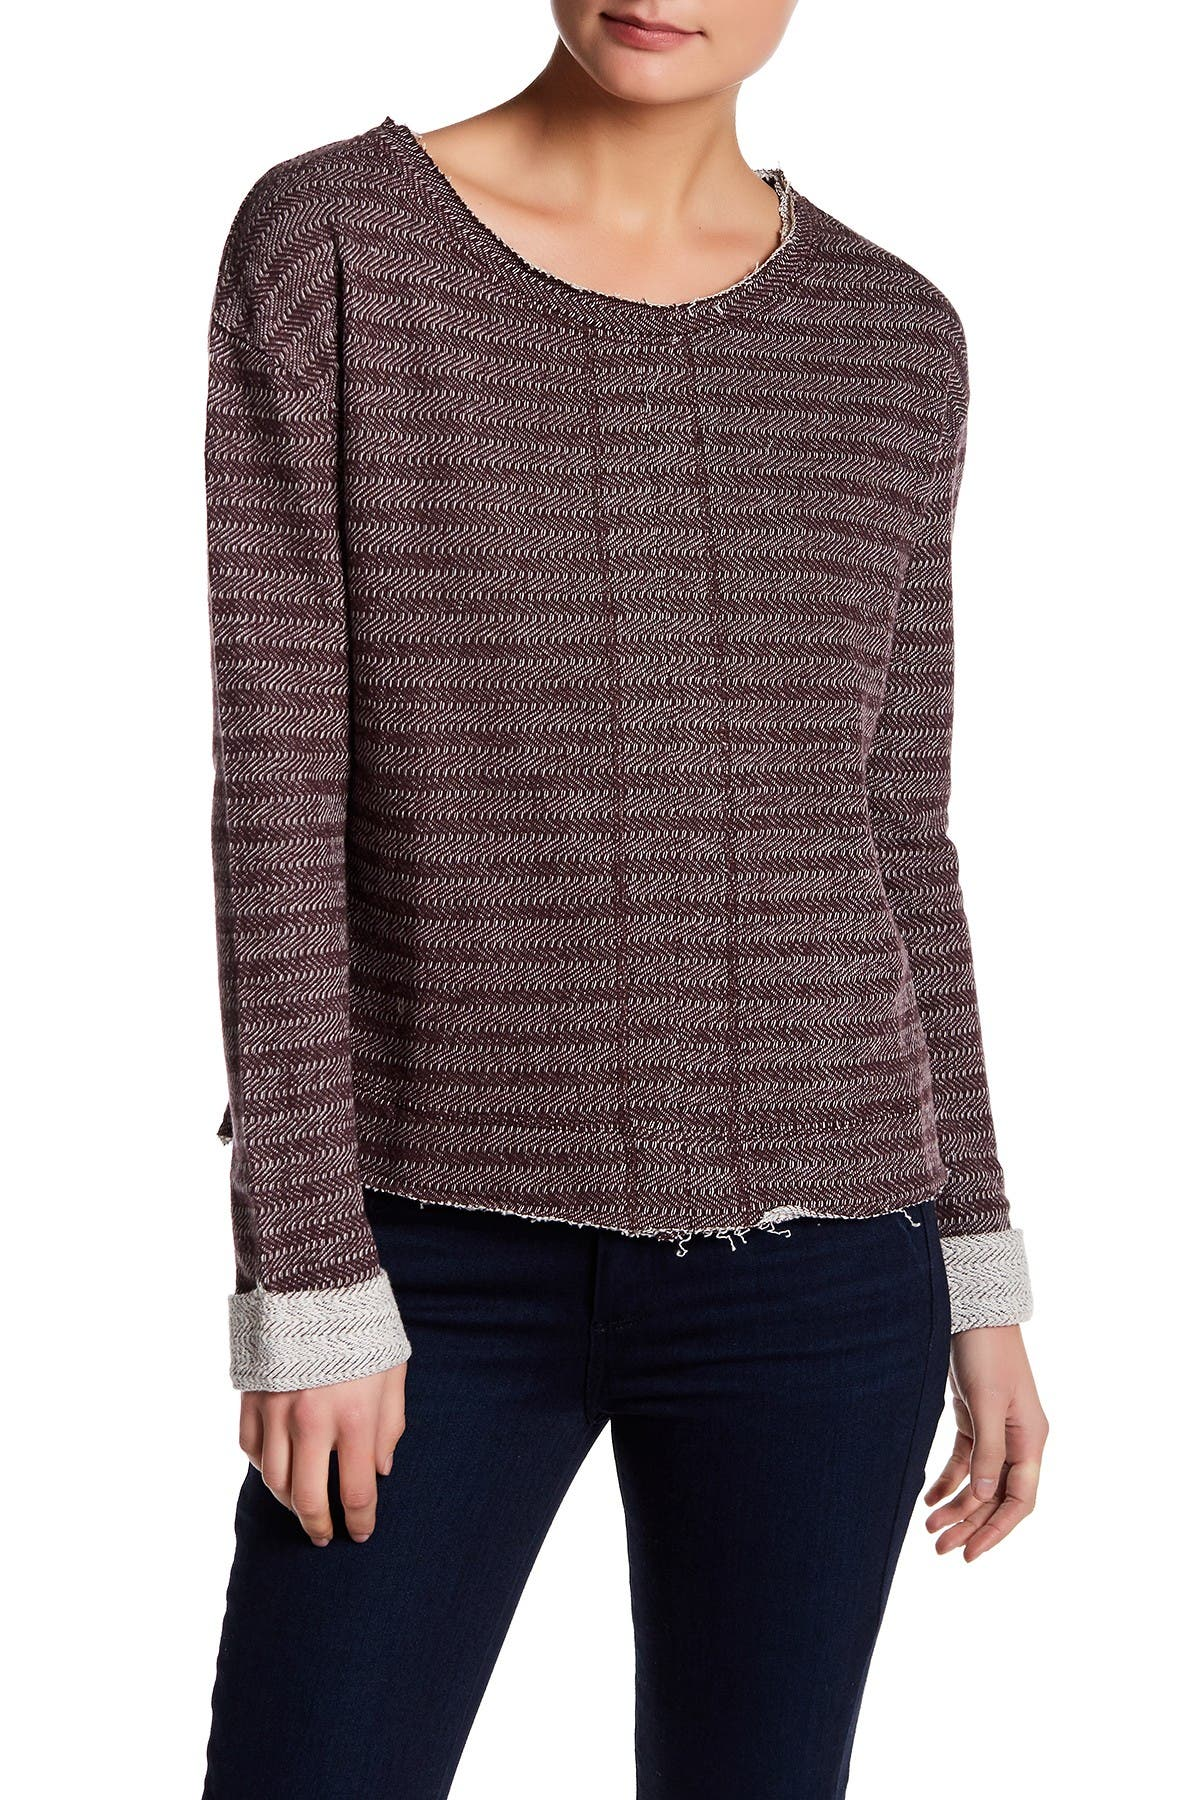 Image of Melrose and Market Herringbone Pullover Sweater